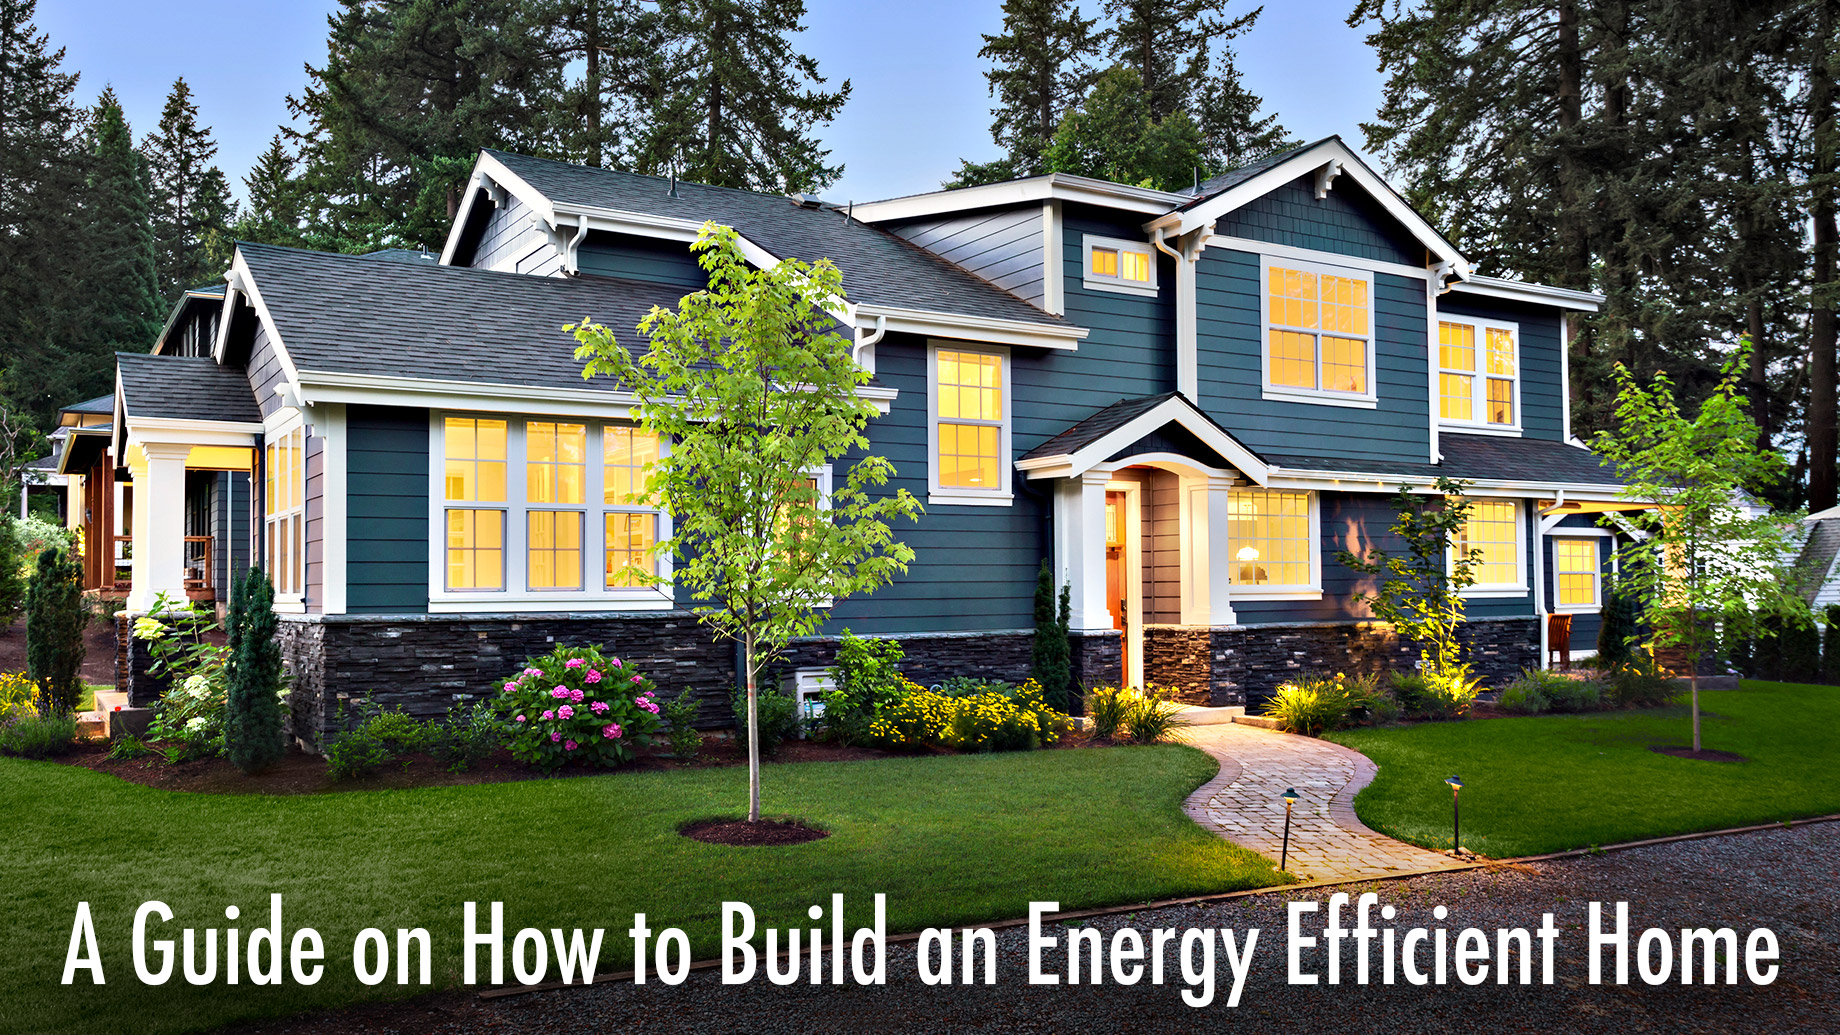 Living Greener A Guide On How To Build An Energy Efficient Home